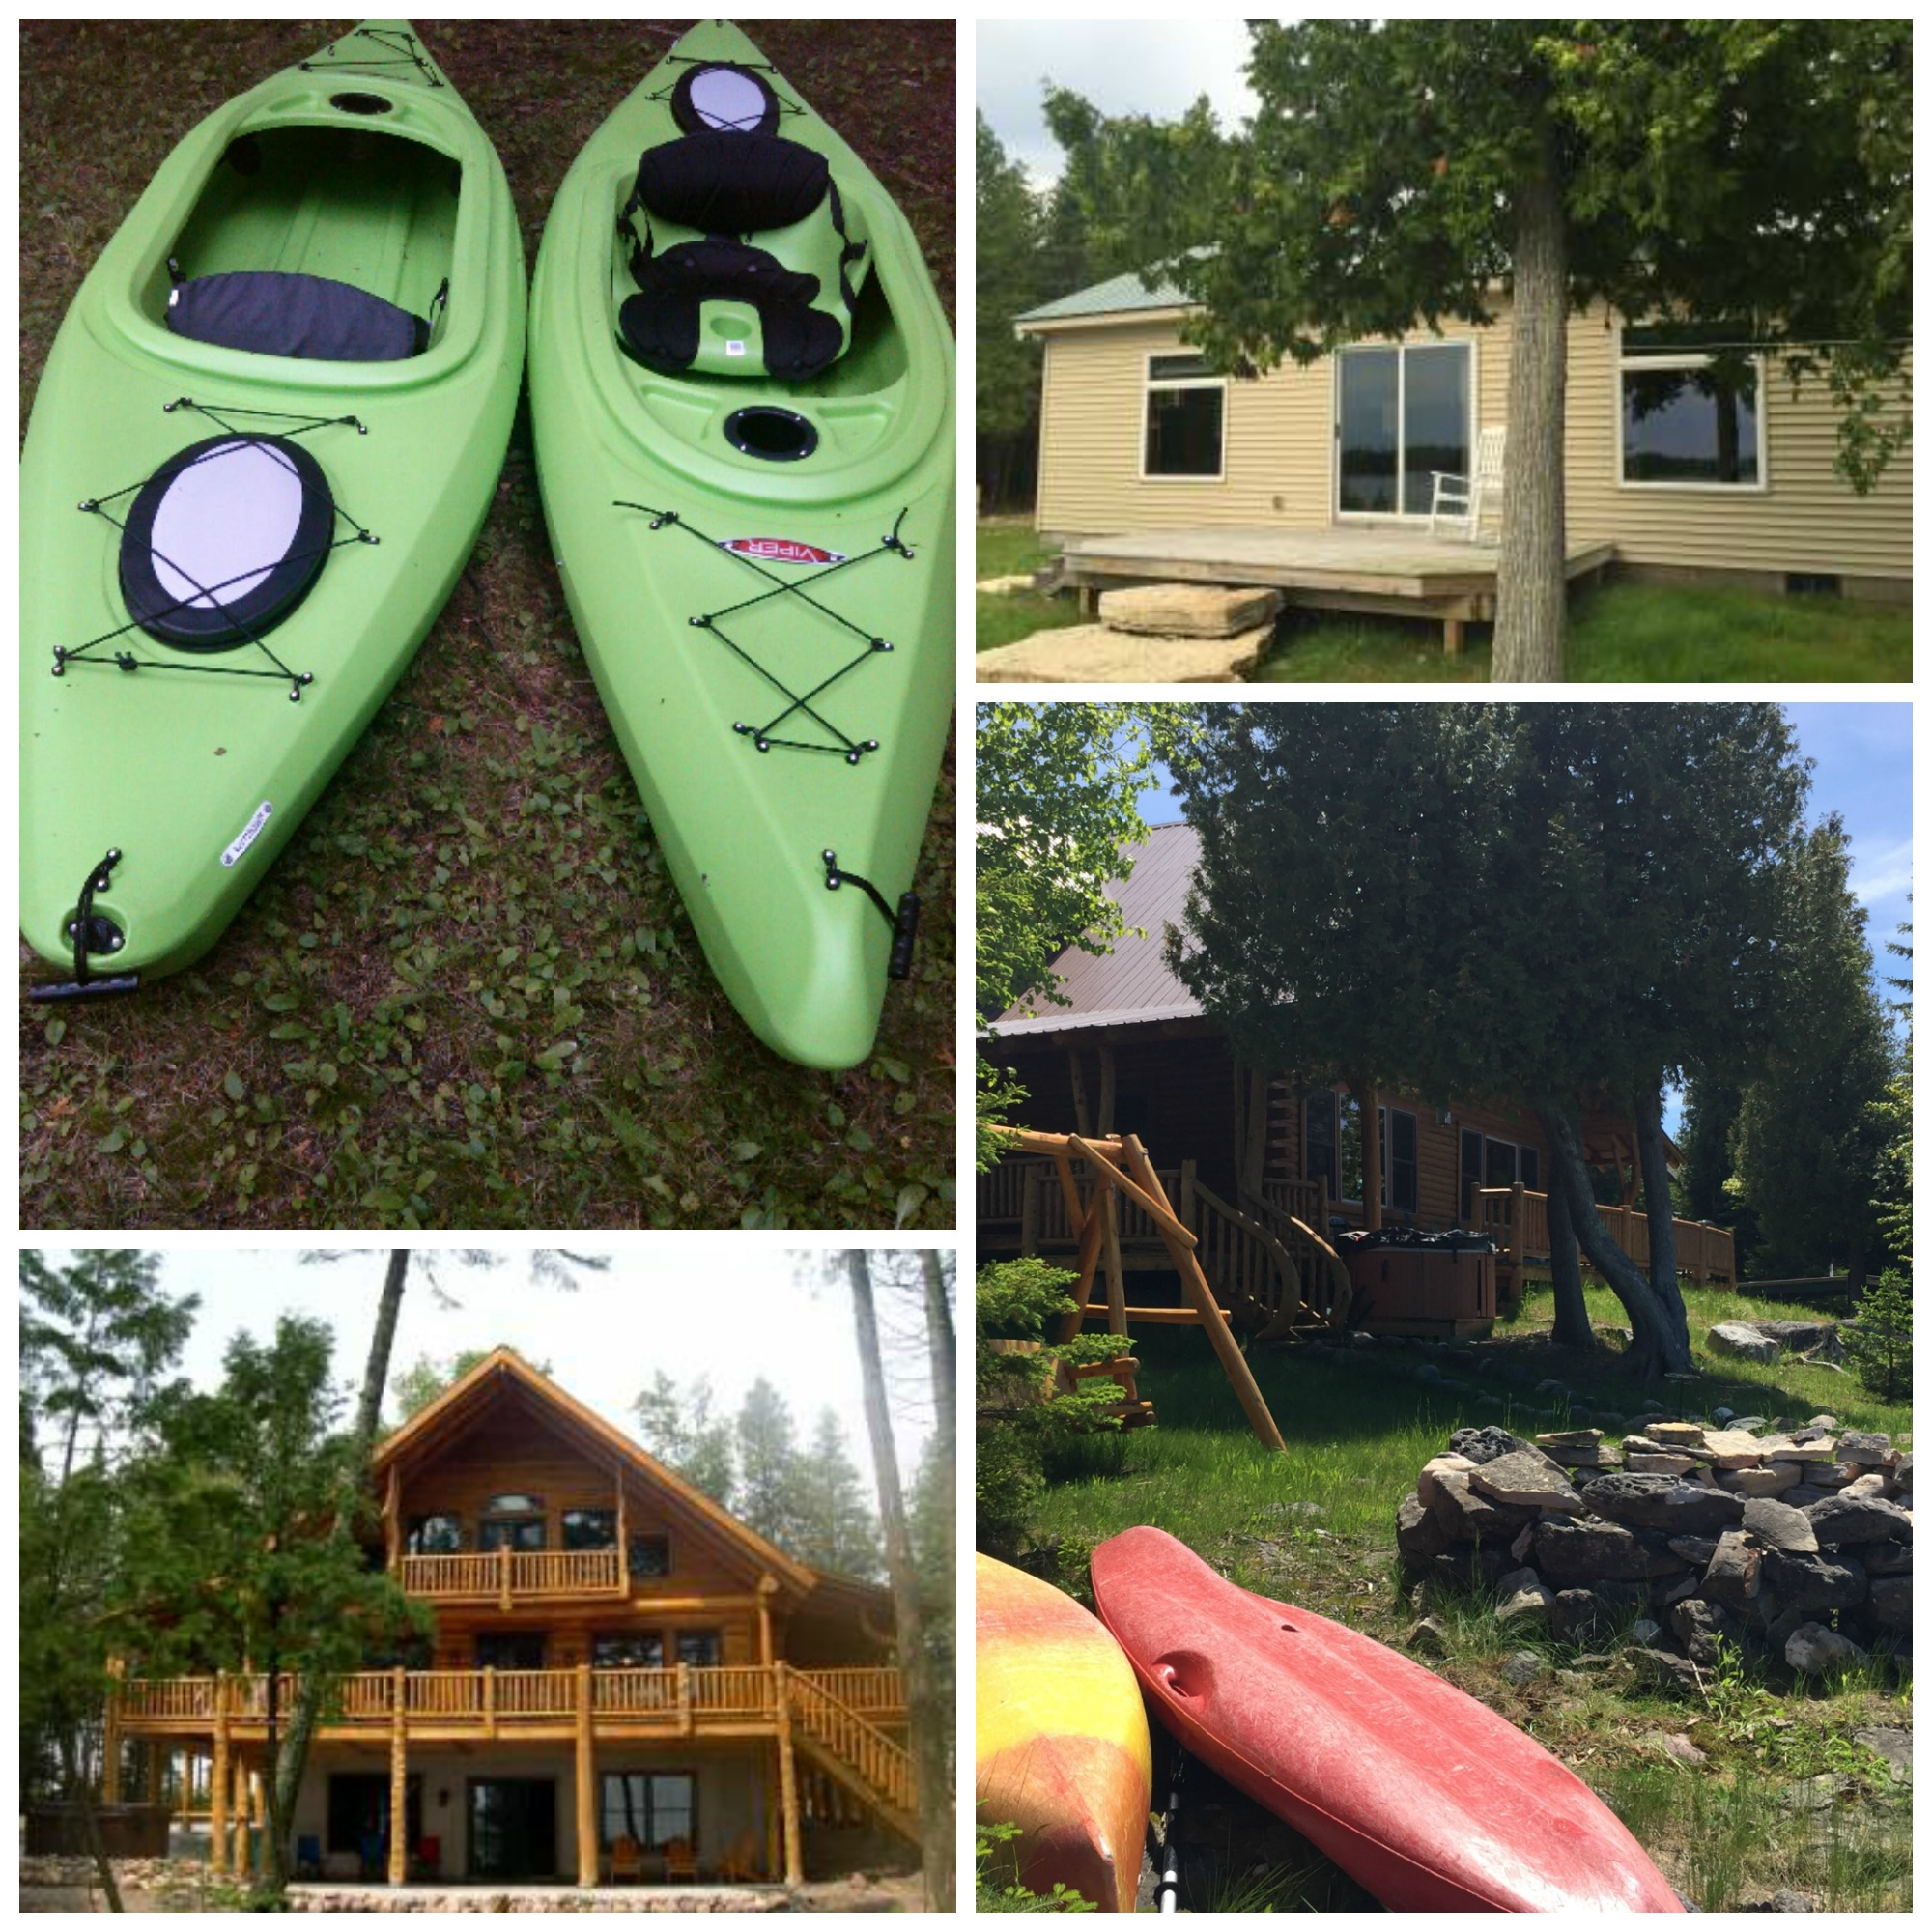 Drummond Island Michigan | Drummond Island Rentals | Vacation Homes on Drummond Island